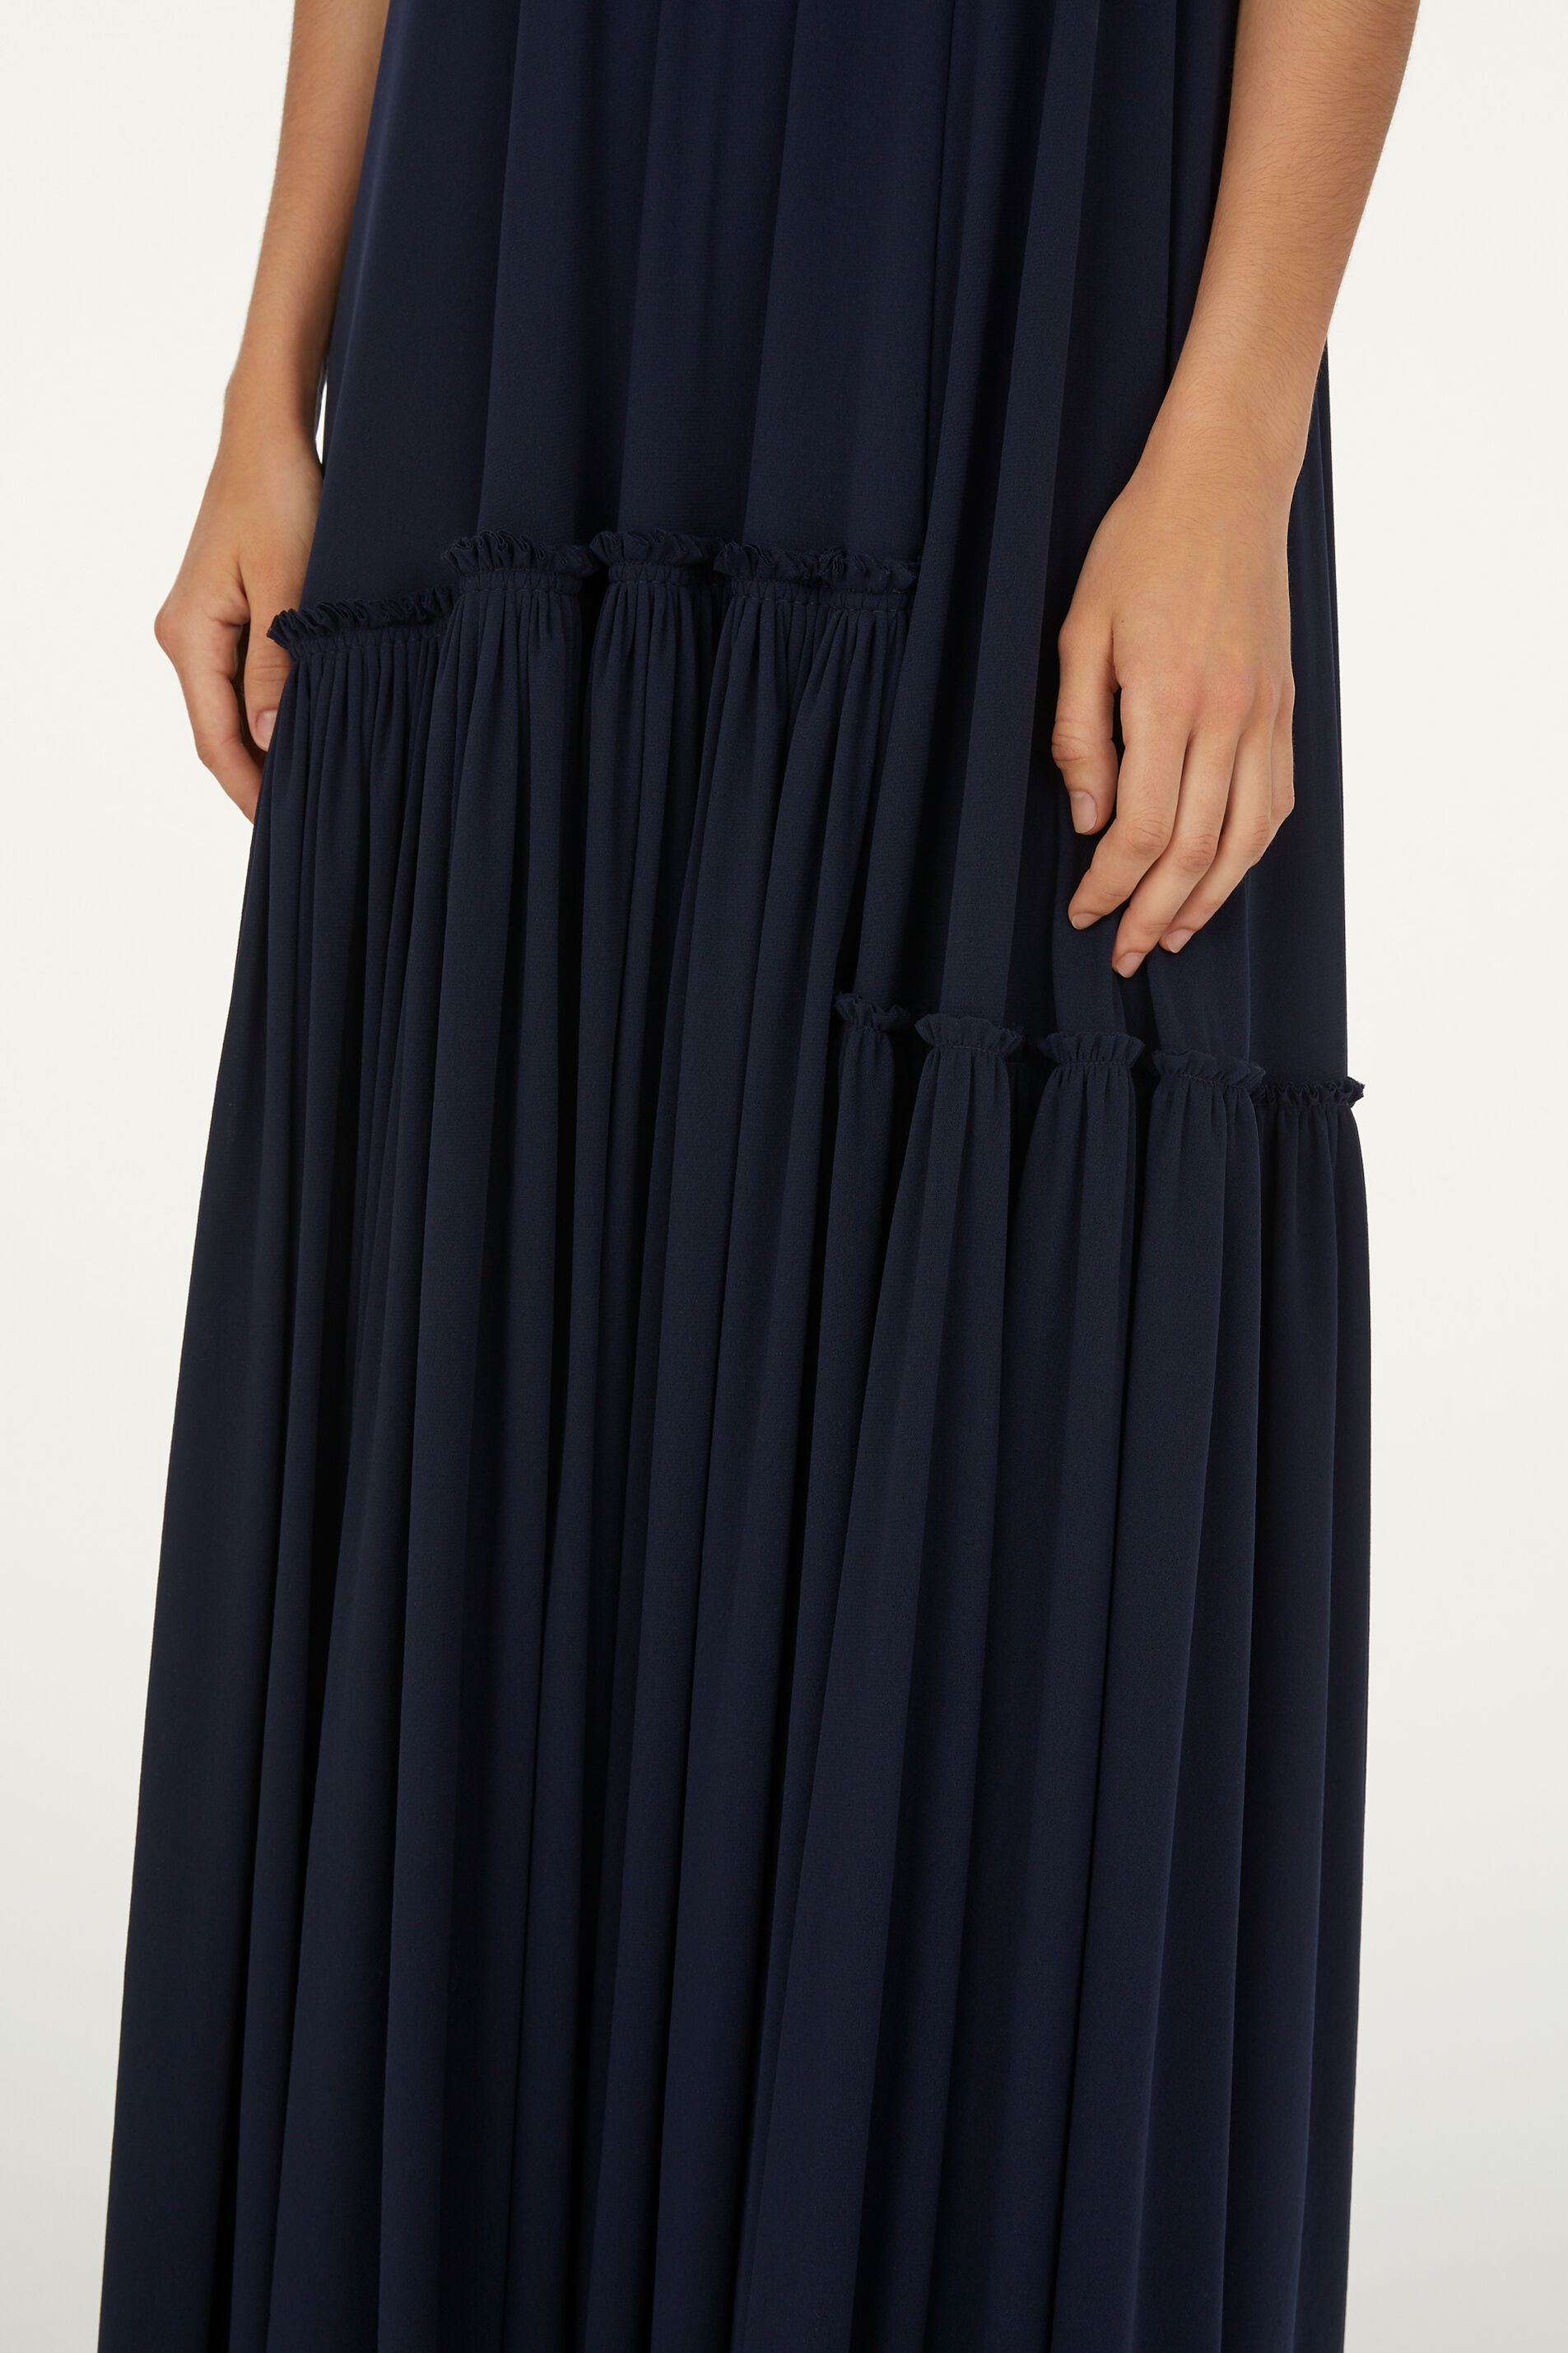 Jersey Dress, dark blue, large